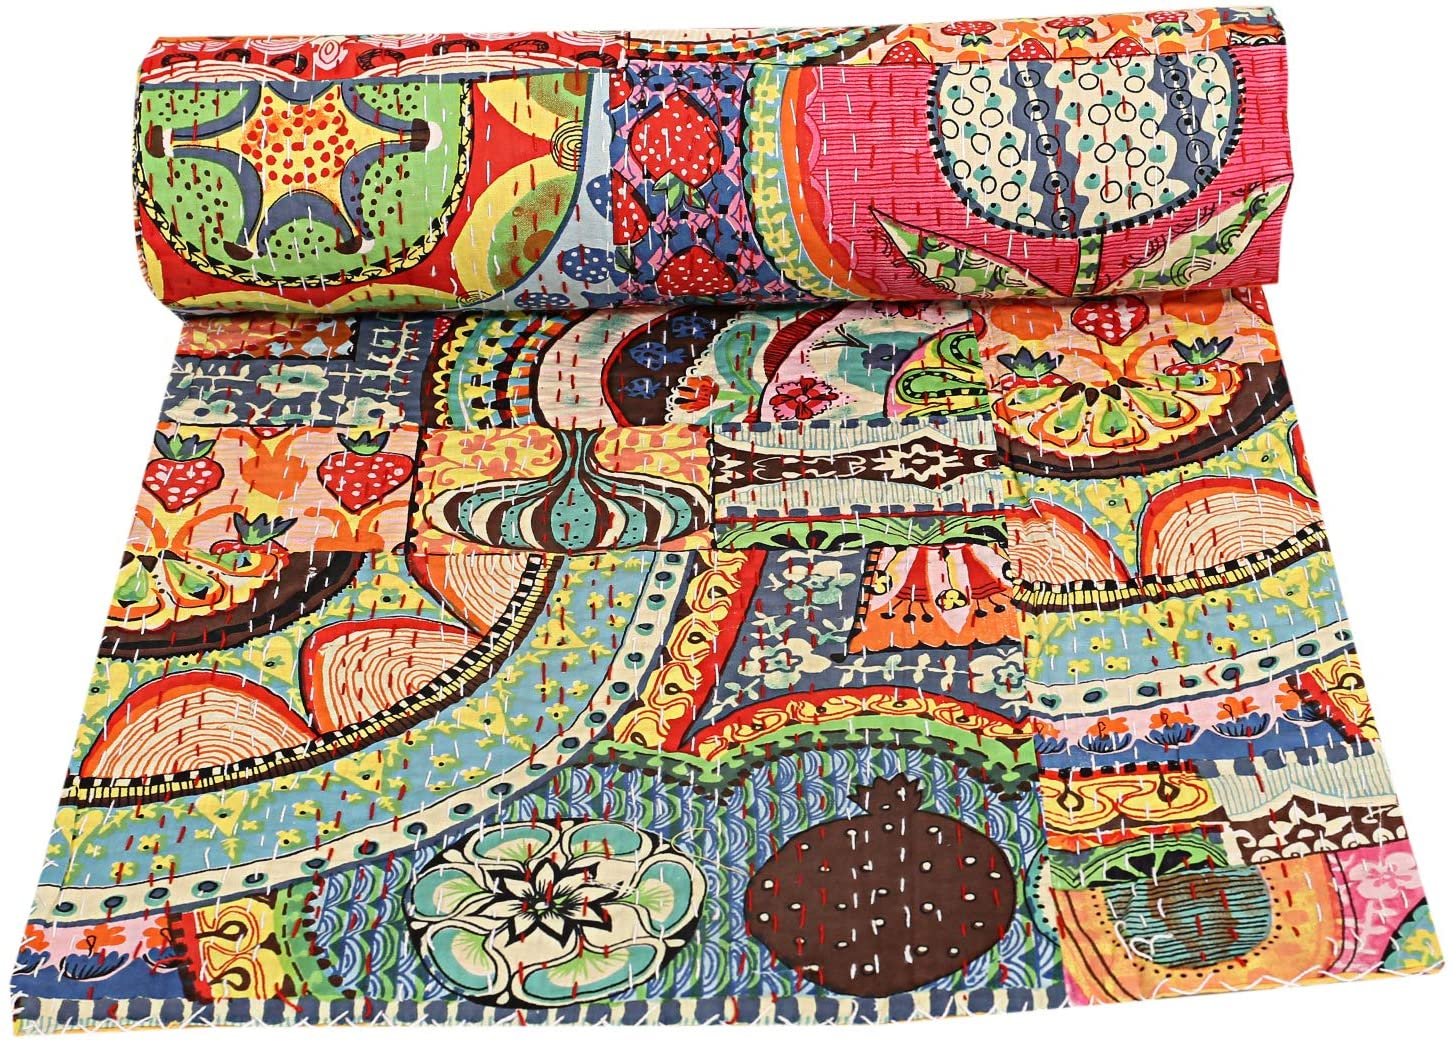 Vintage Hand Made Indian Kantha Quilt Bed Spread Throw King Size Home Decor Boho